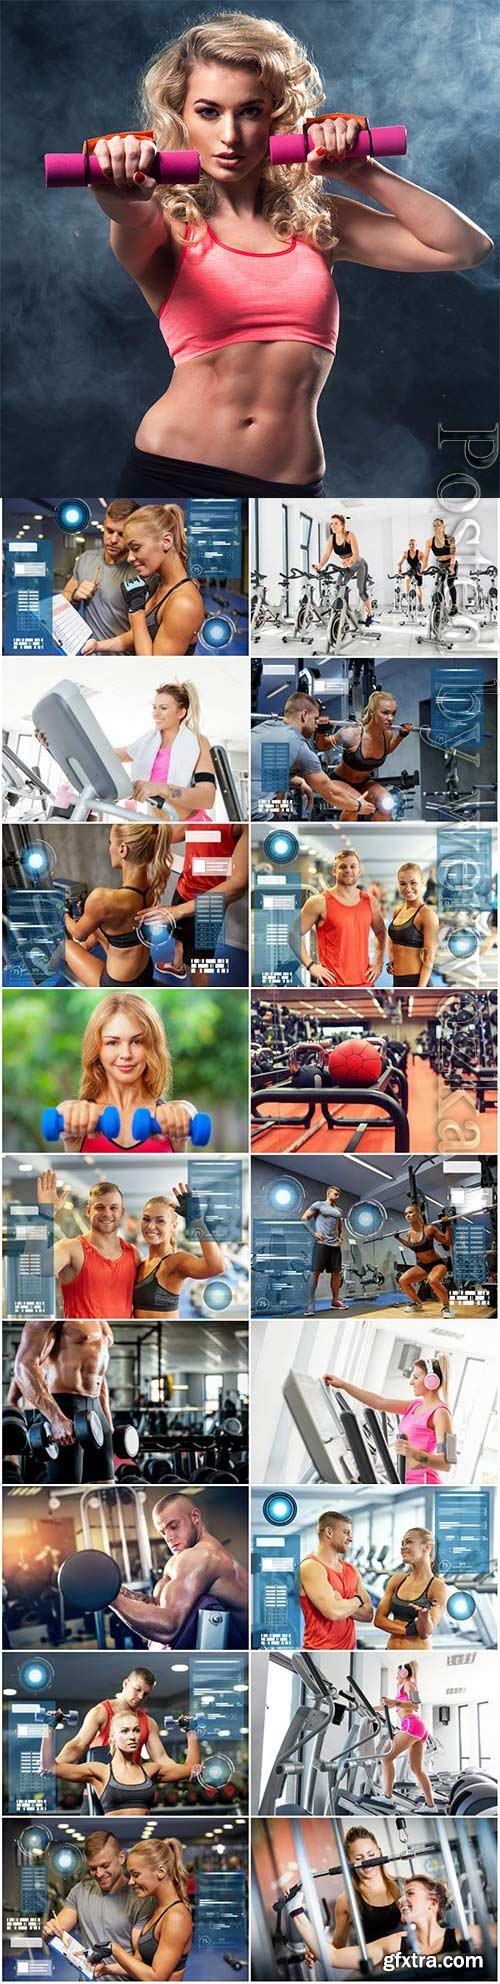 People and sport concept stock photo